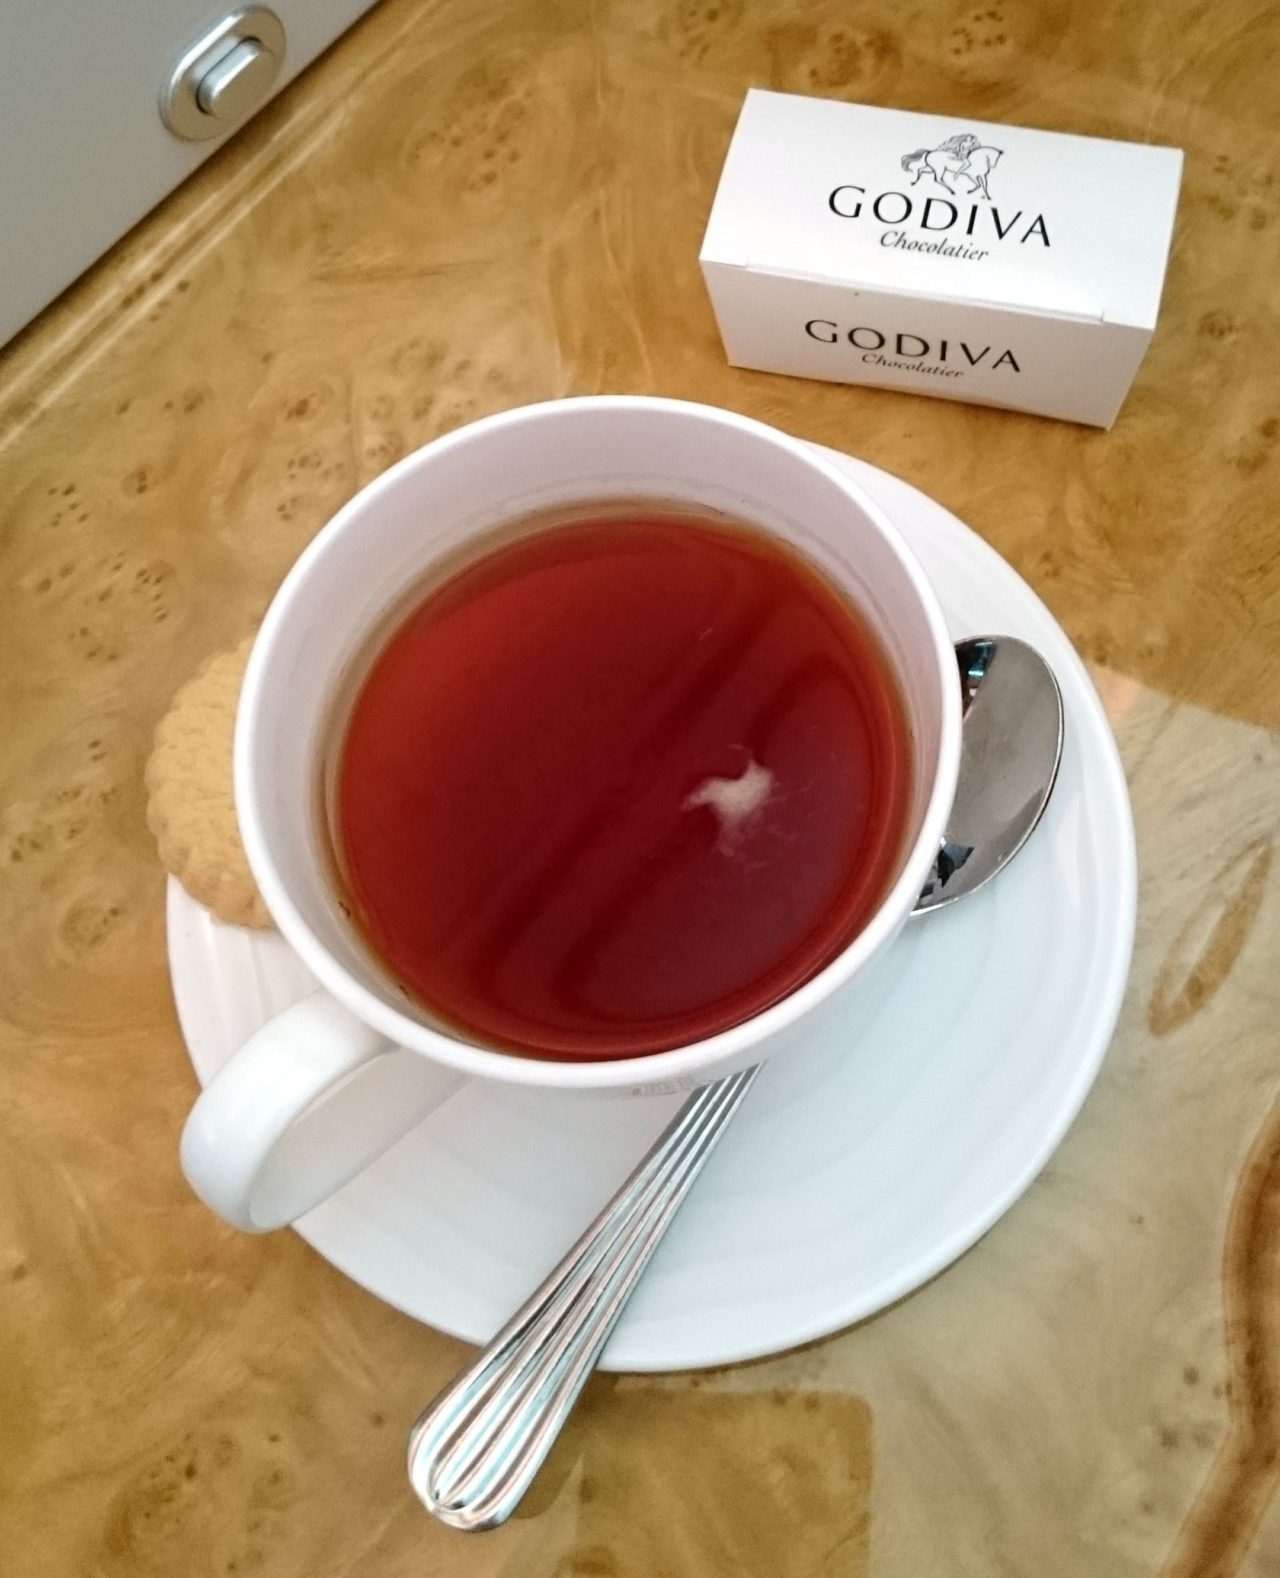 tea cup and godiva